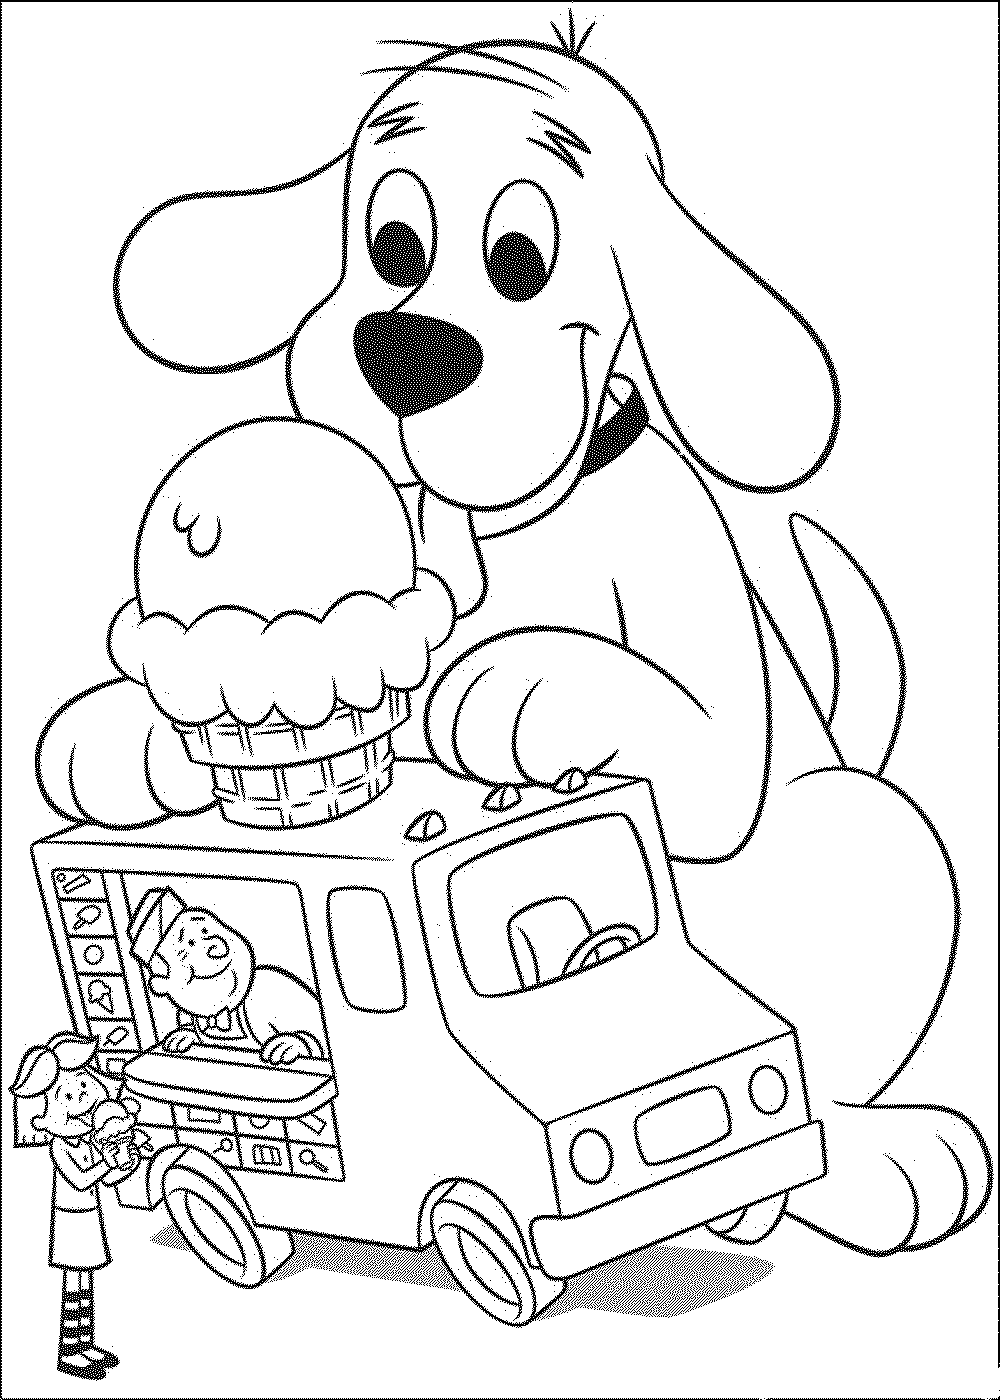 colouring pages of dog employ dog coloring pages for your childrens creative time colouring pages of dog